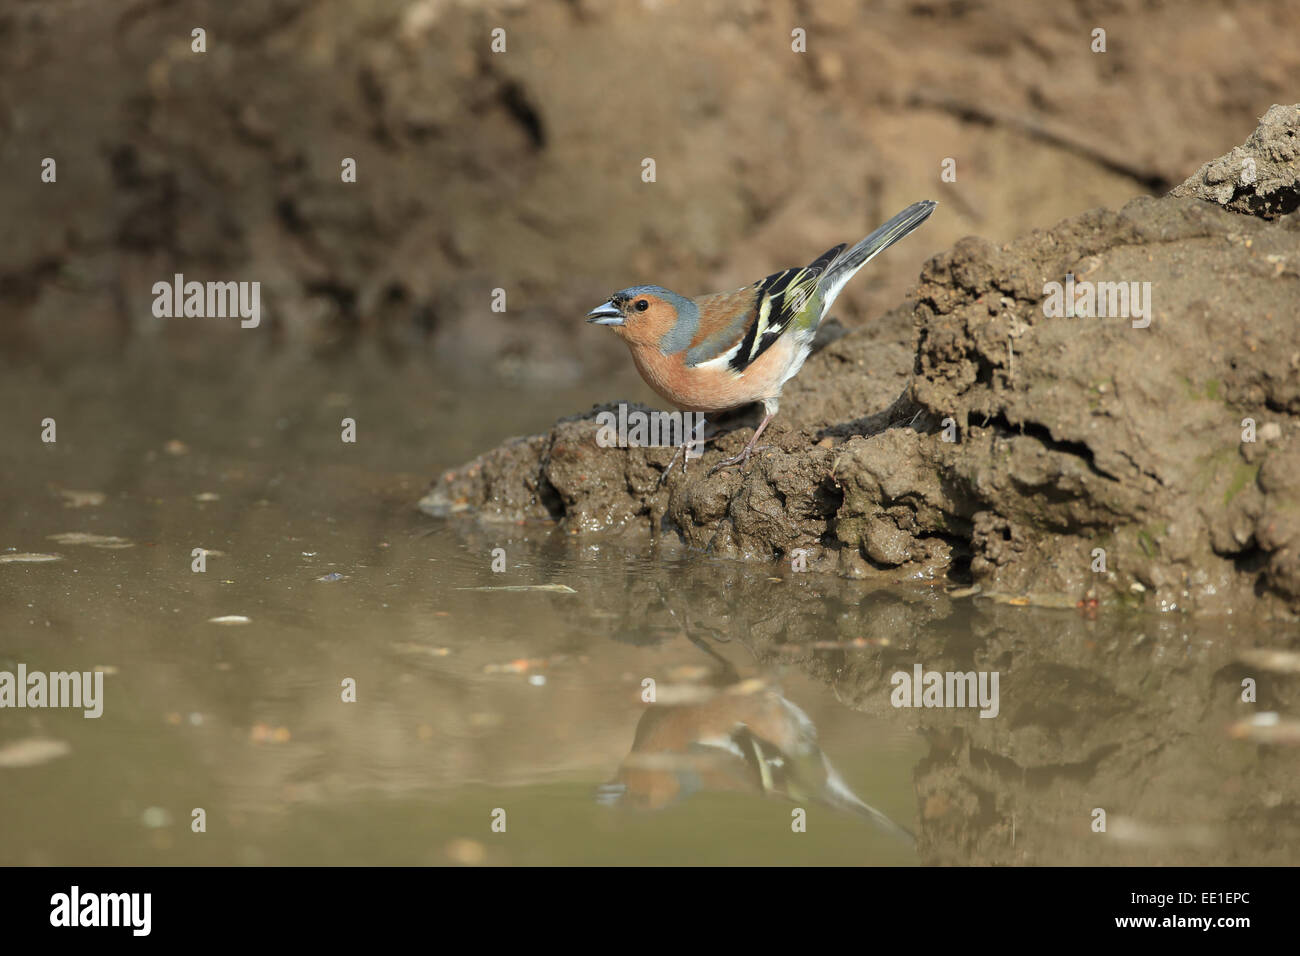 Common Chaffinch (Fringilla coelebs) adult male, drinking at puddle, Norfolk, England, April - Stock Image